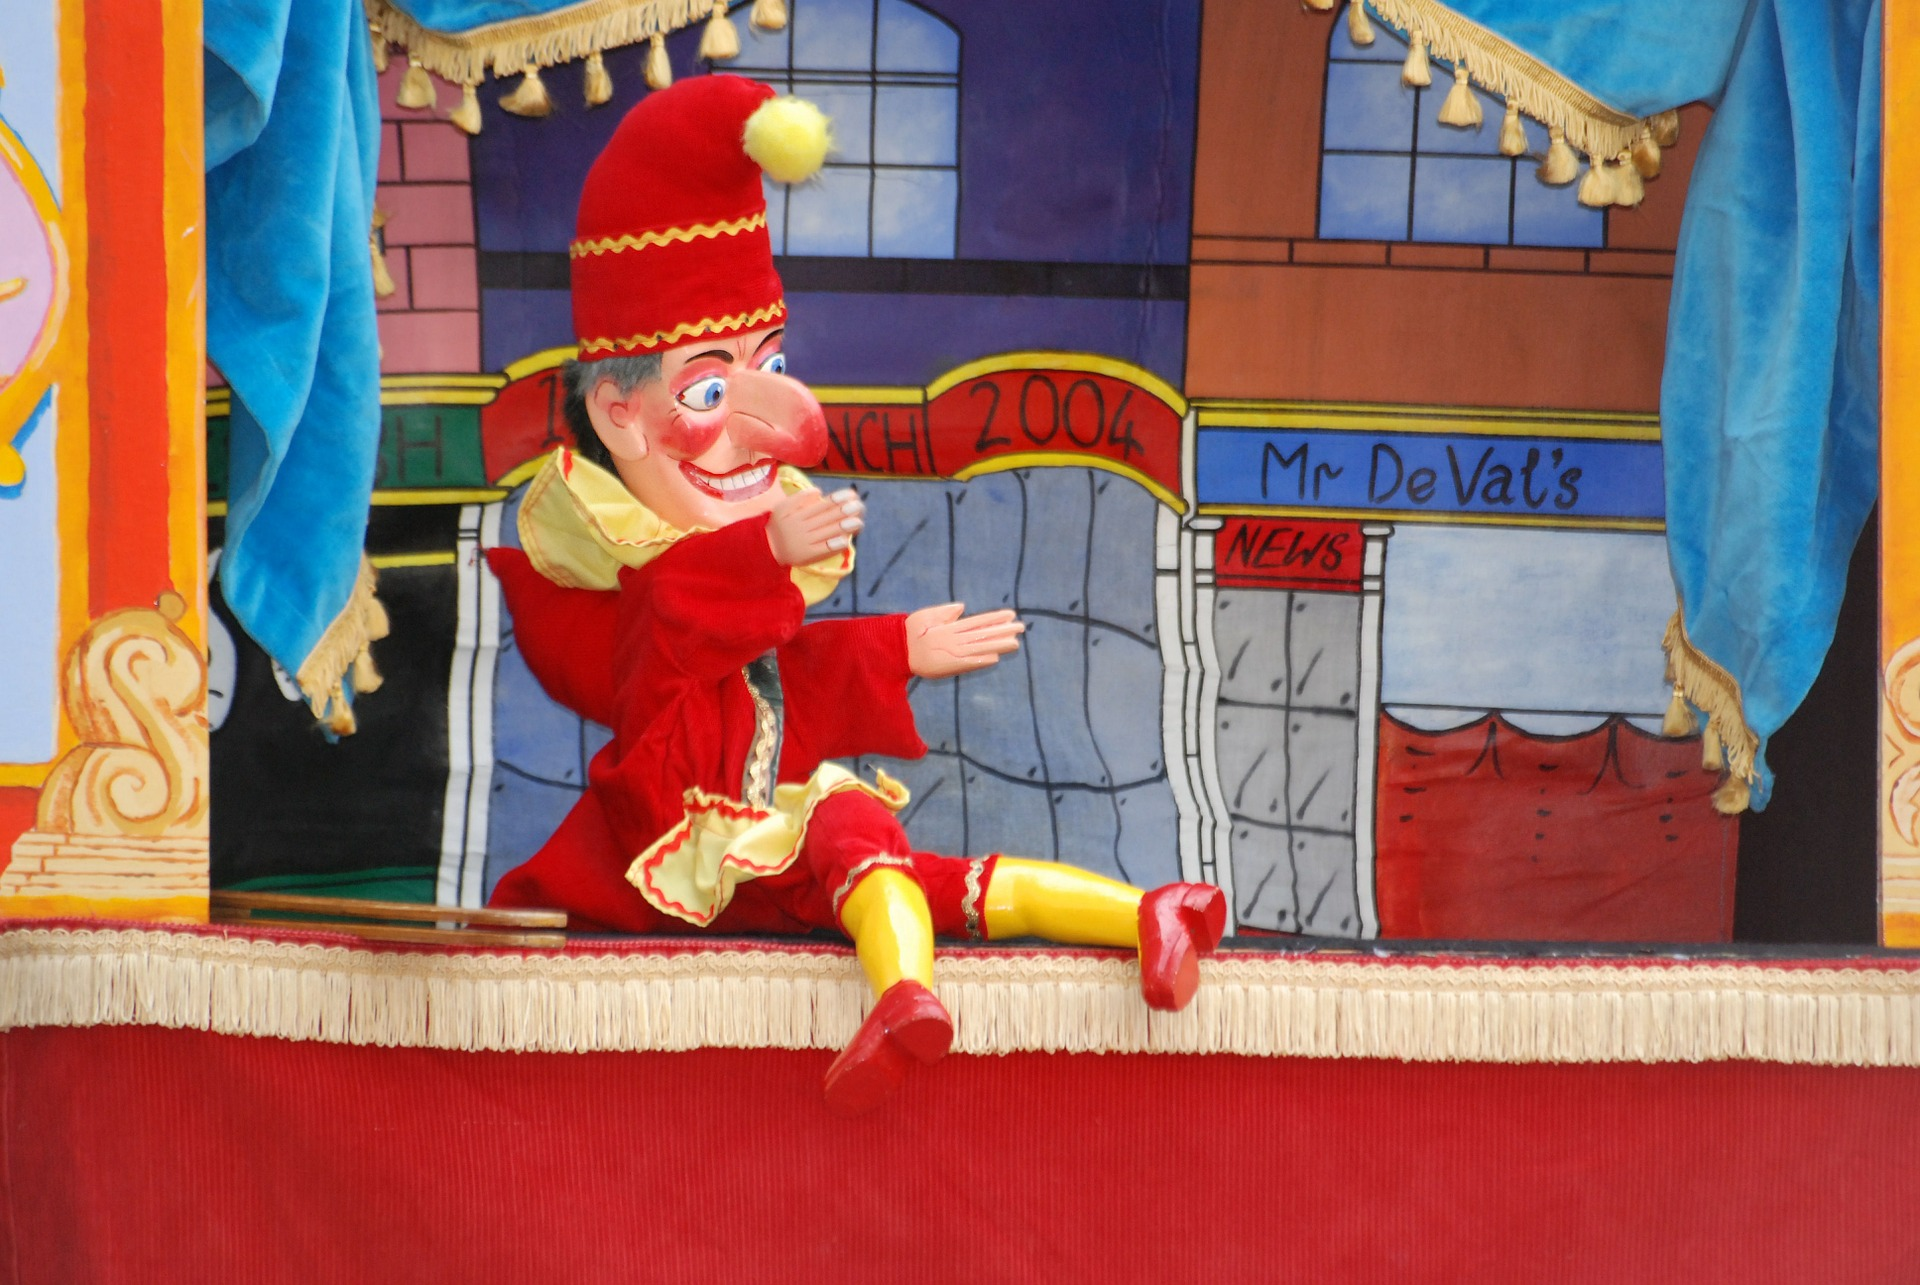 Punch the puppet from Punch and Judy